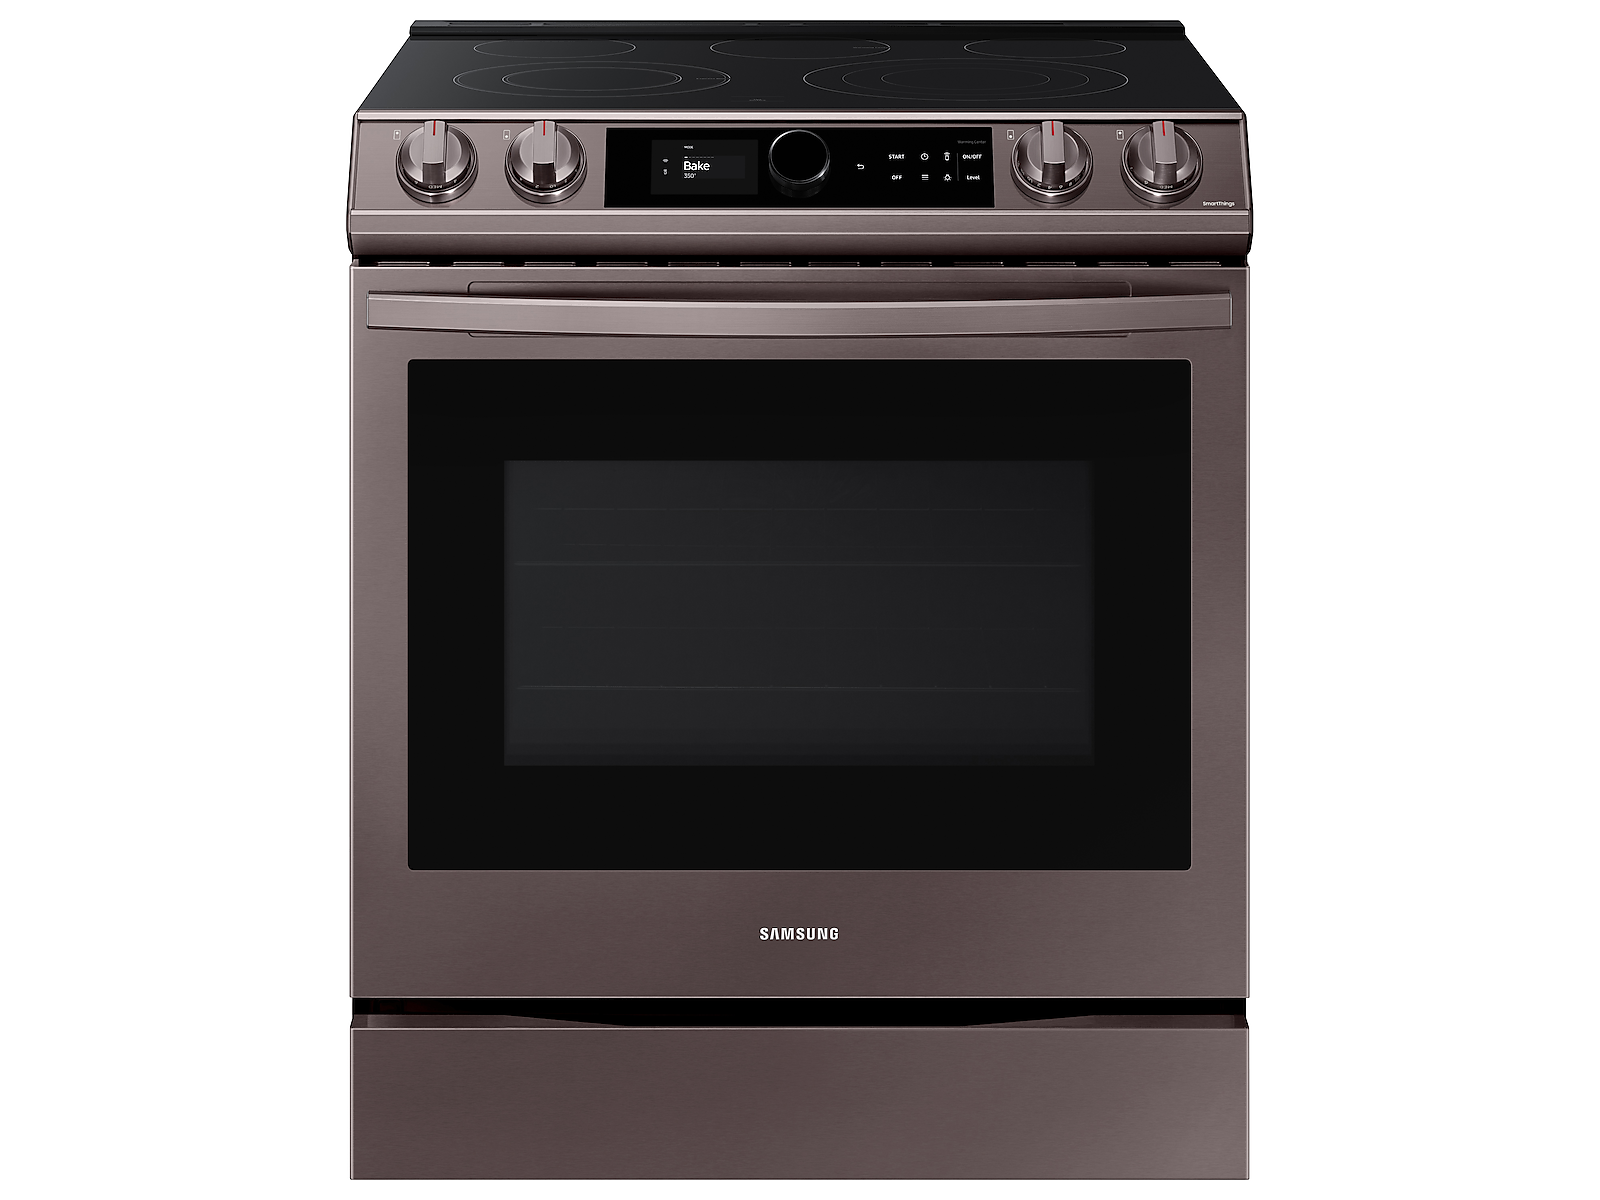 Samsung 6.3 cu ft. Smart Slide-in Electric Range with Smart Dial & Air Fry in Tuscan Stainless Steel(NE63T8711ST/AA)